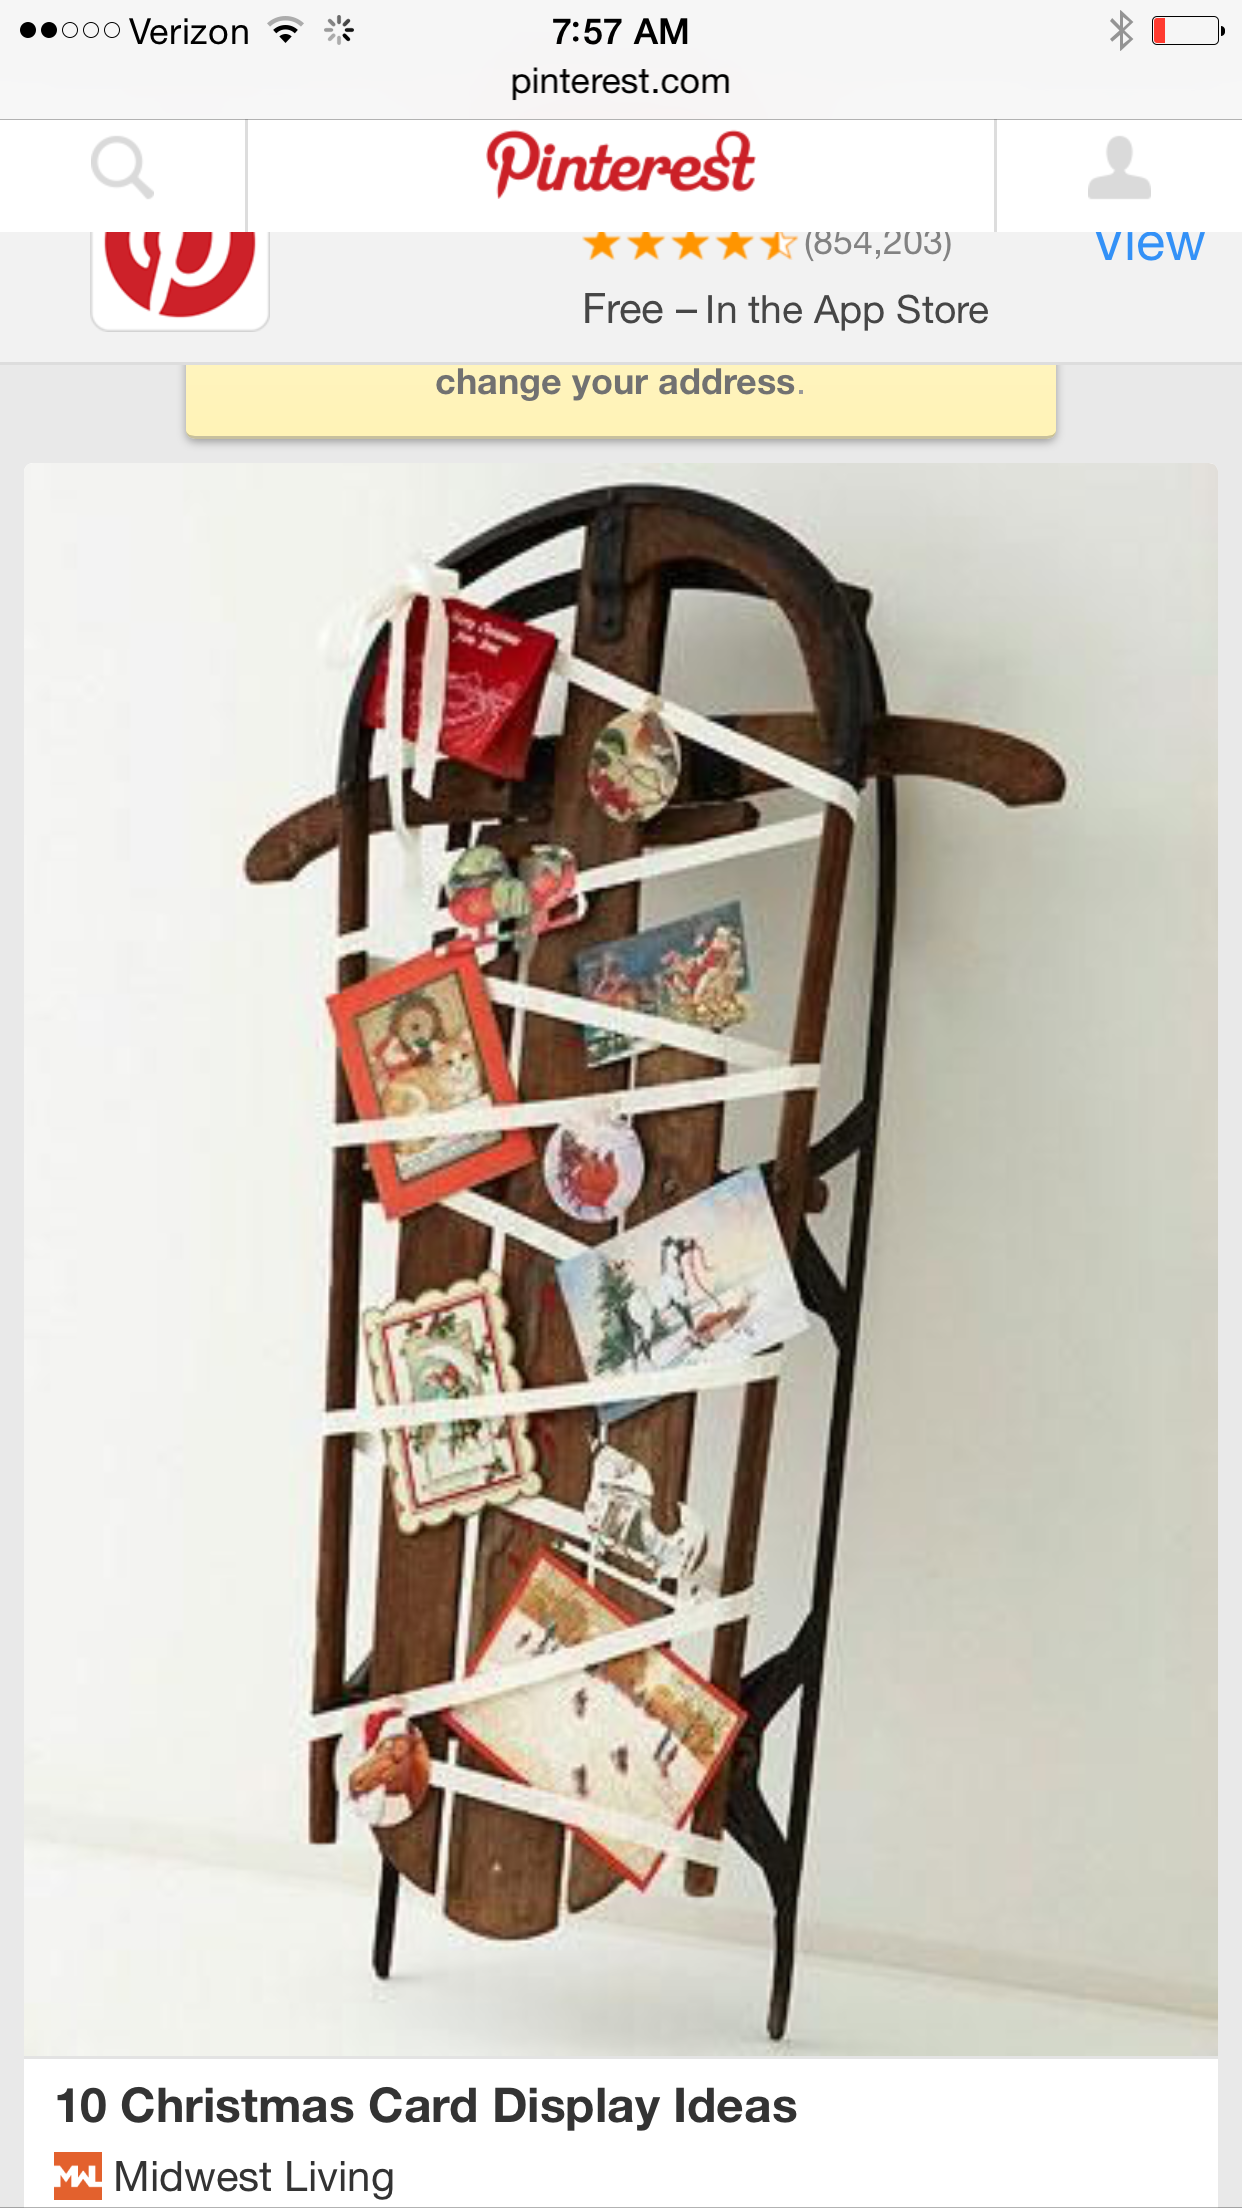 10 Christmas Card Display Ideas Turn Christmas Cards Into Merry Displays  Using These Clever Ideas.